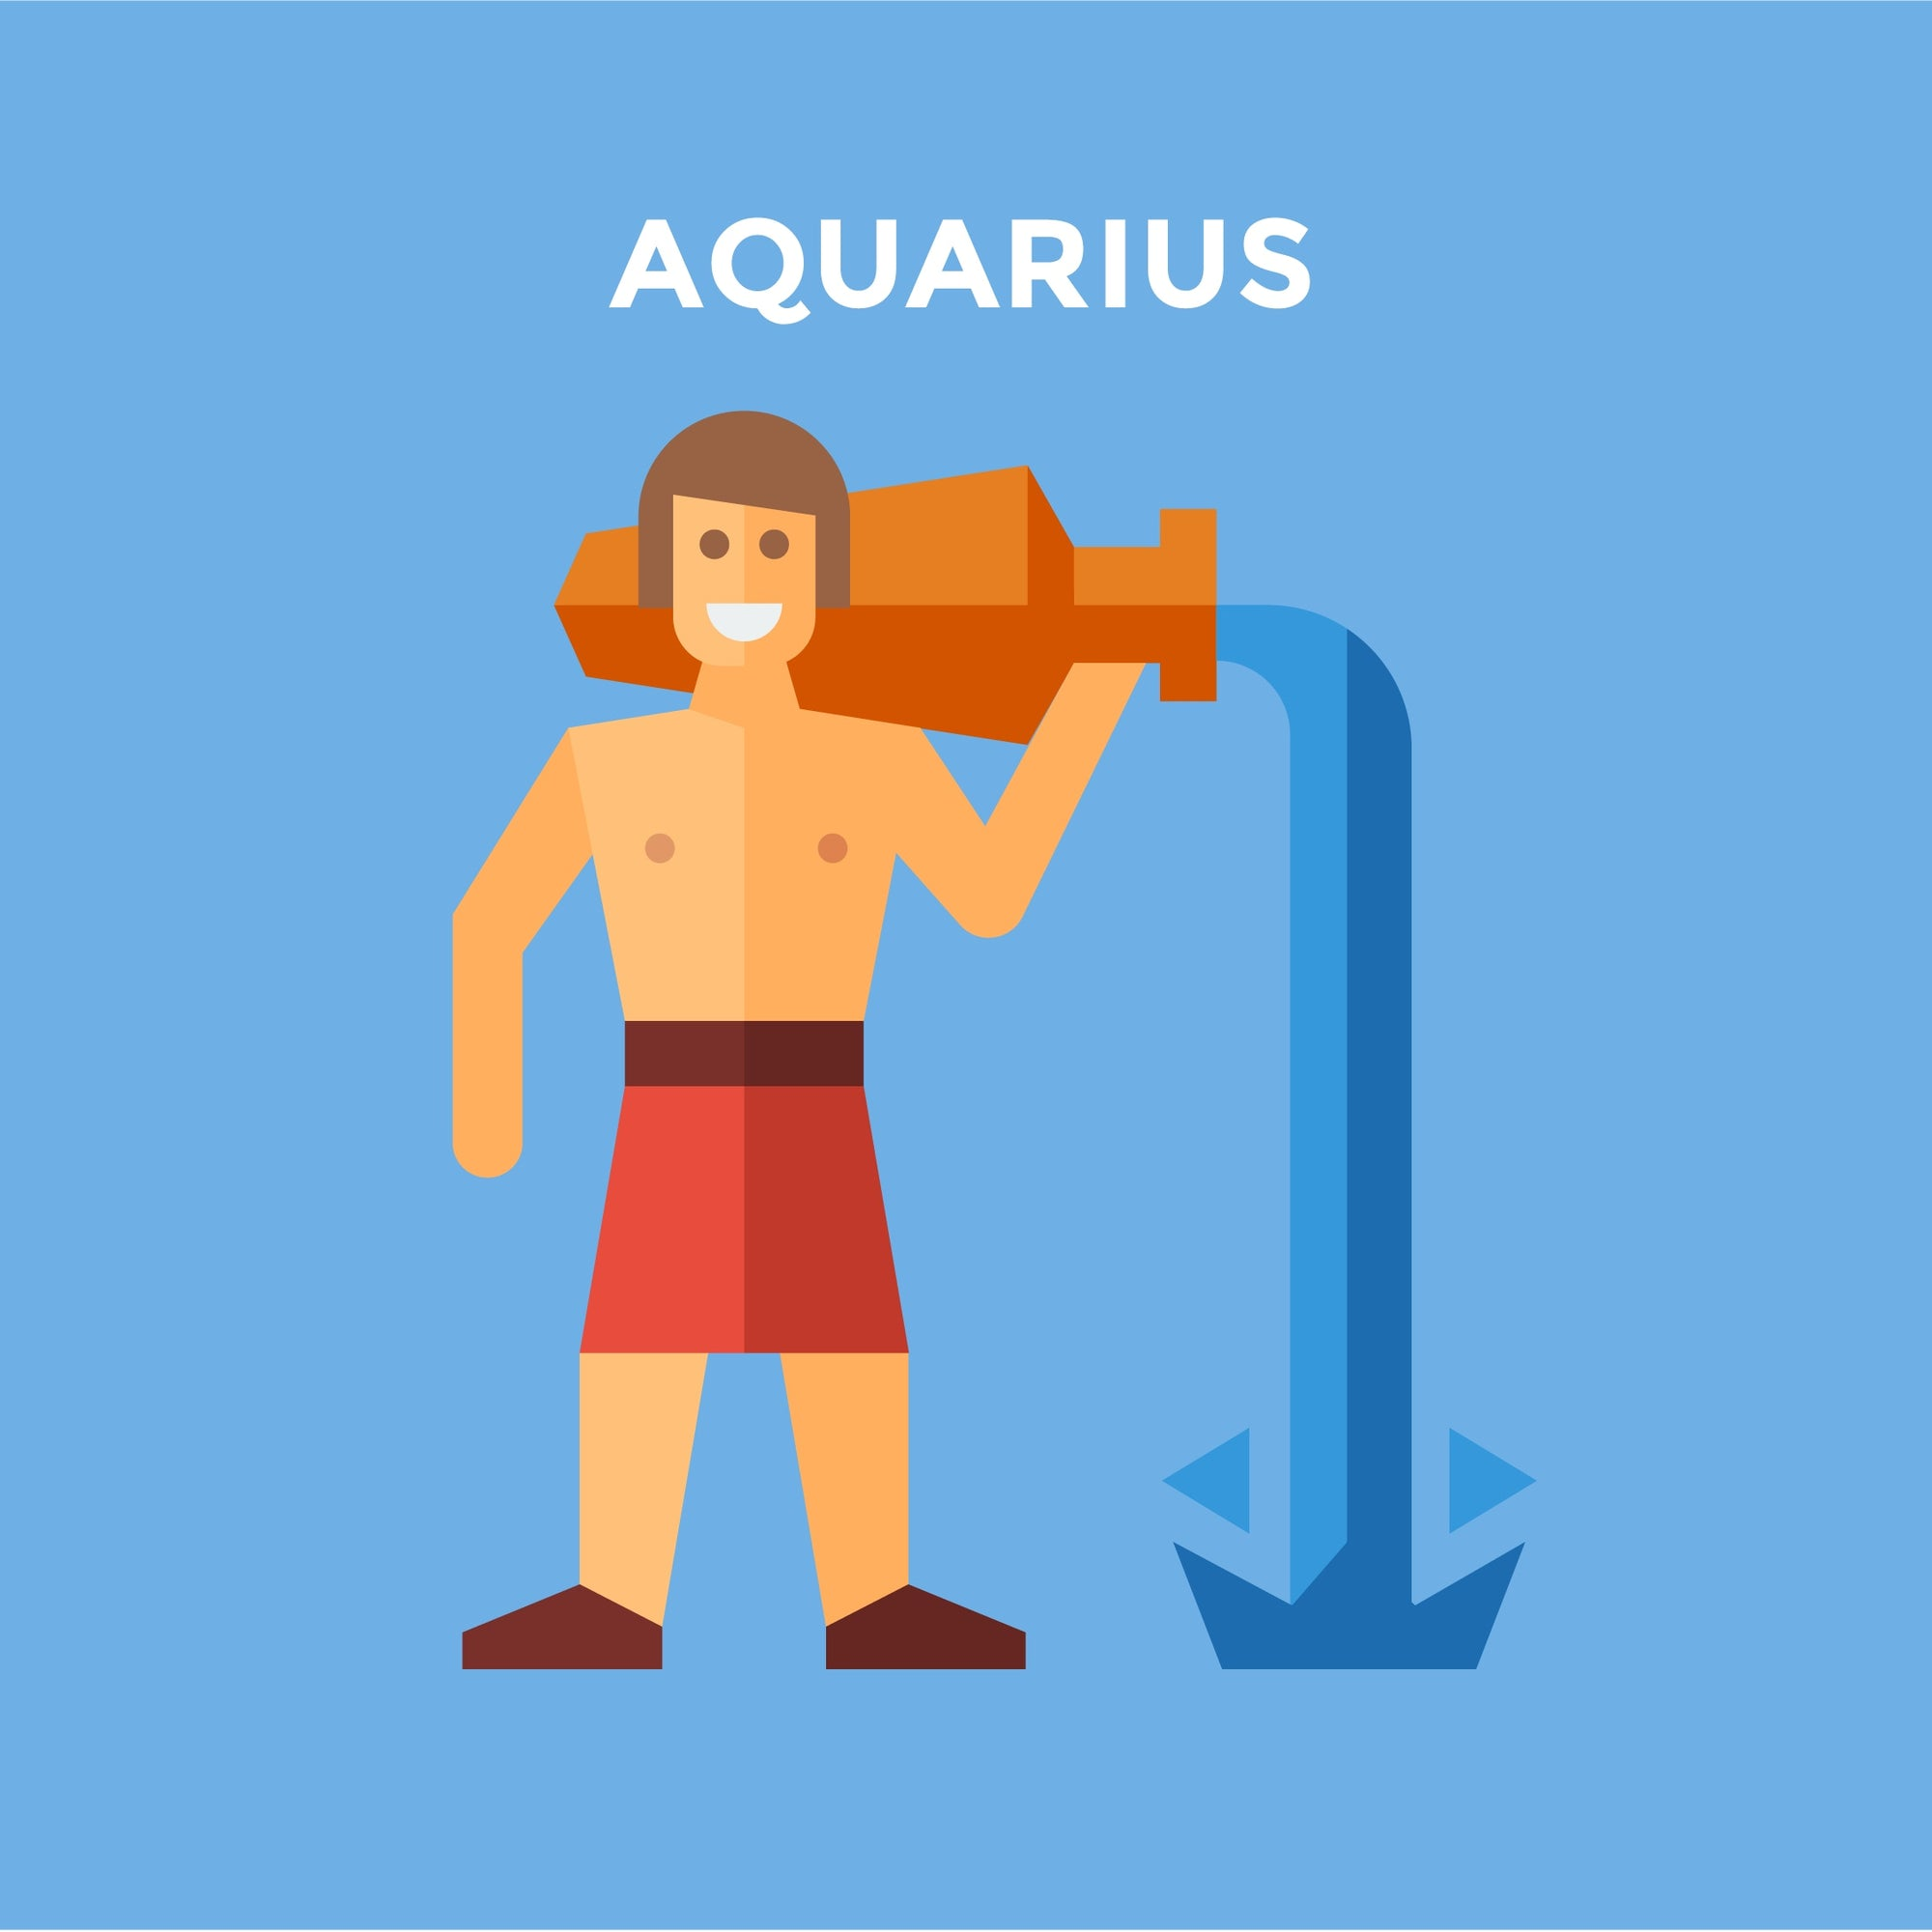 Animation of  man pouring water from pot with caption aquarius